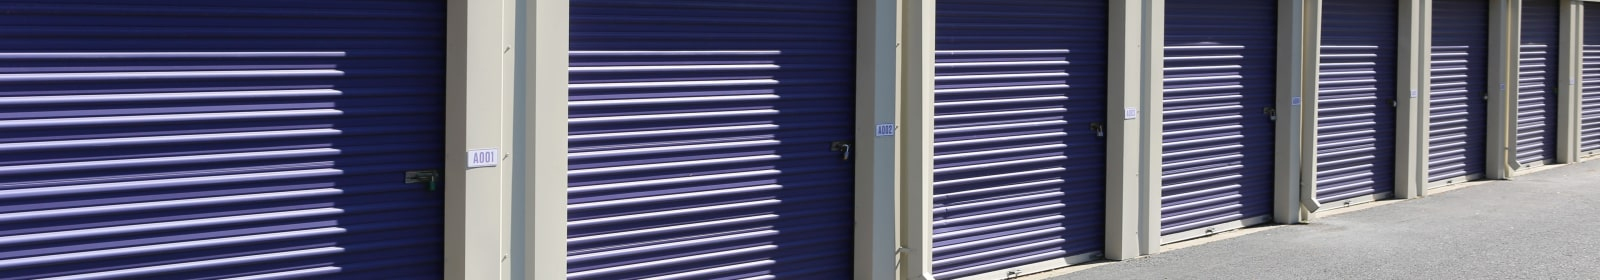 StoreSmart Self-Storage units in Wando, South Carolina